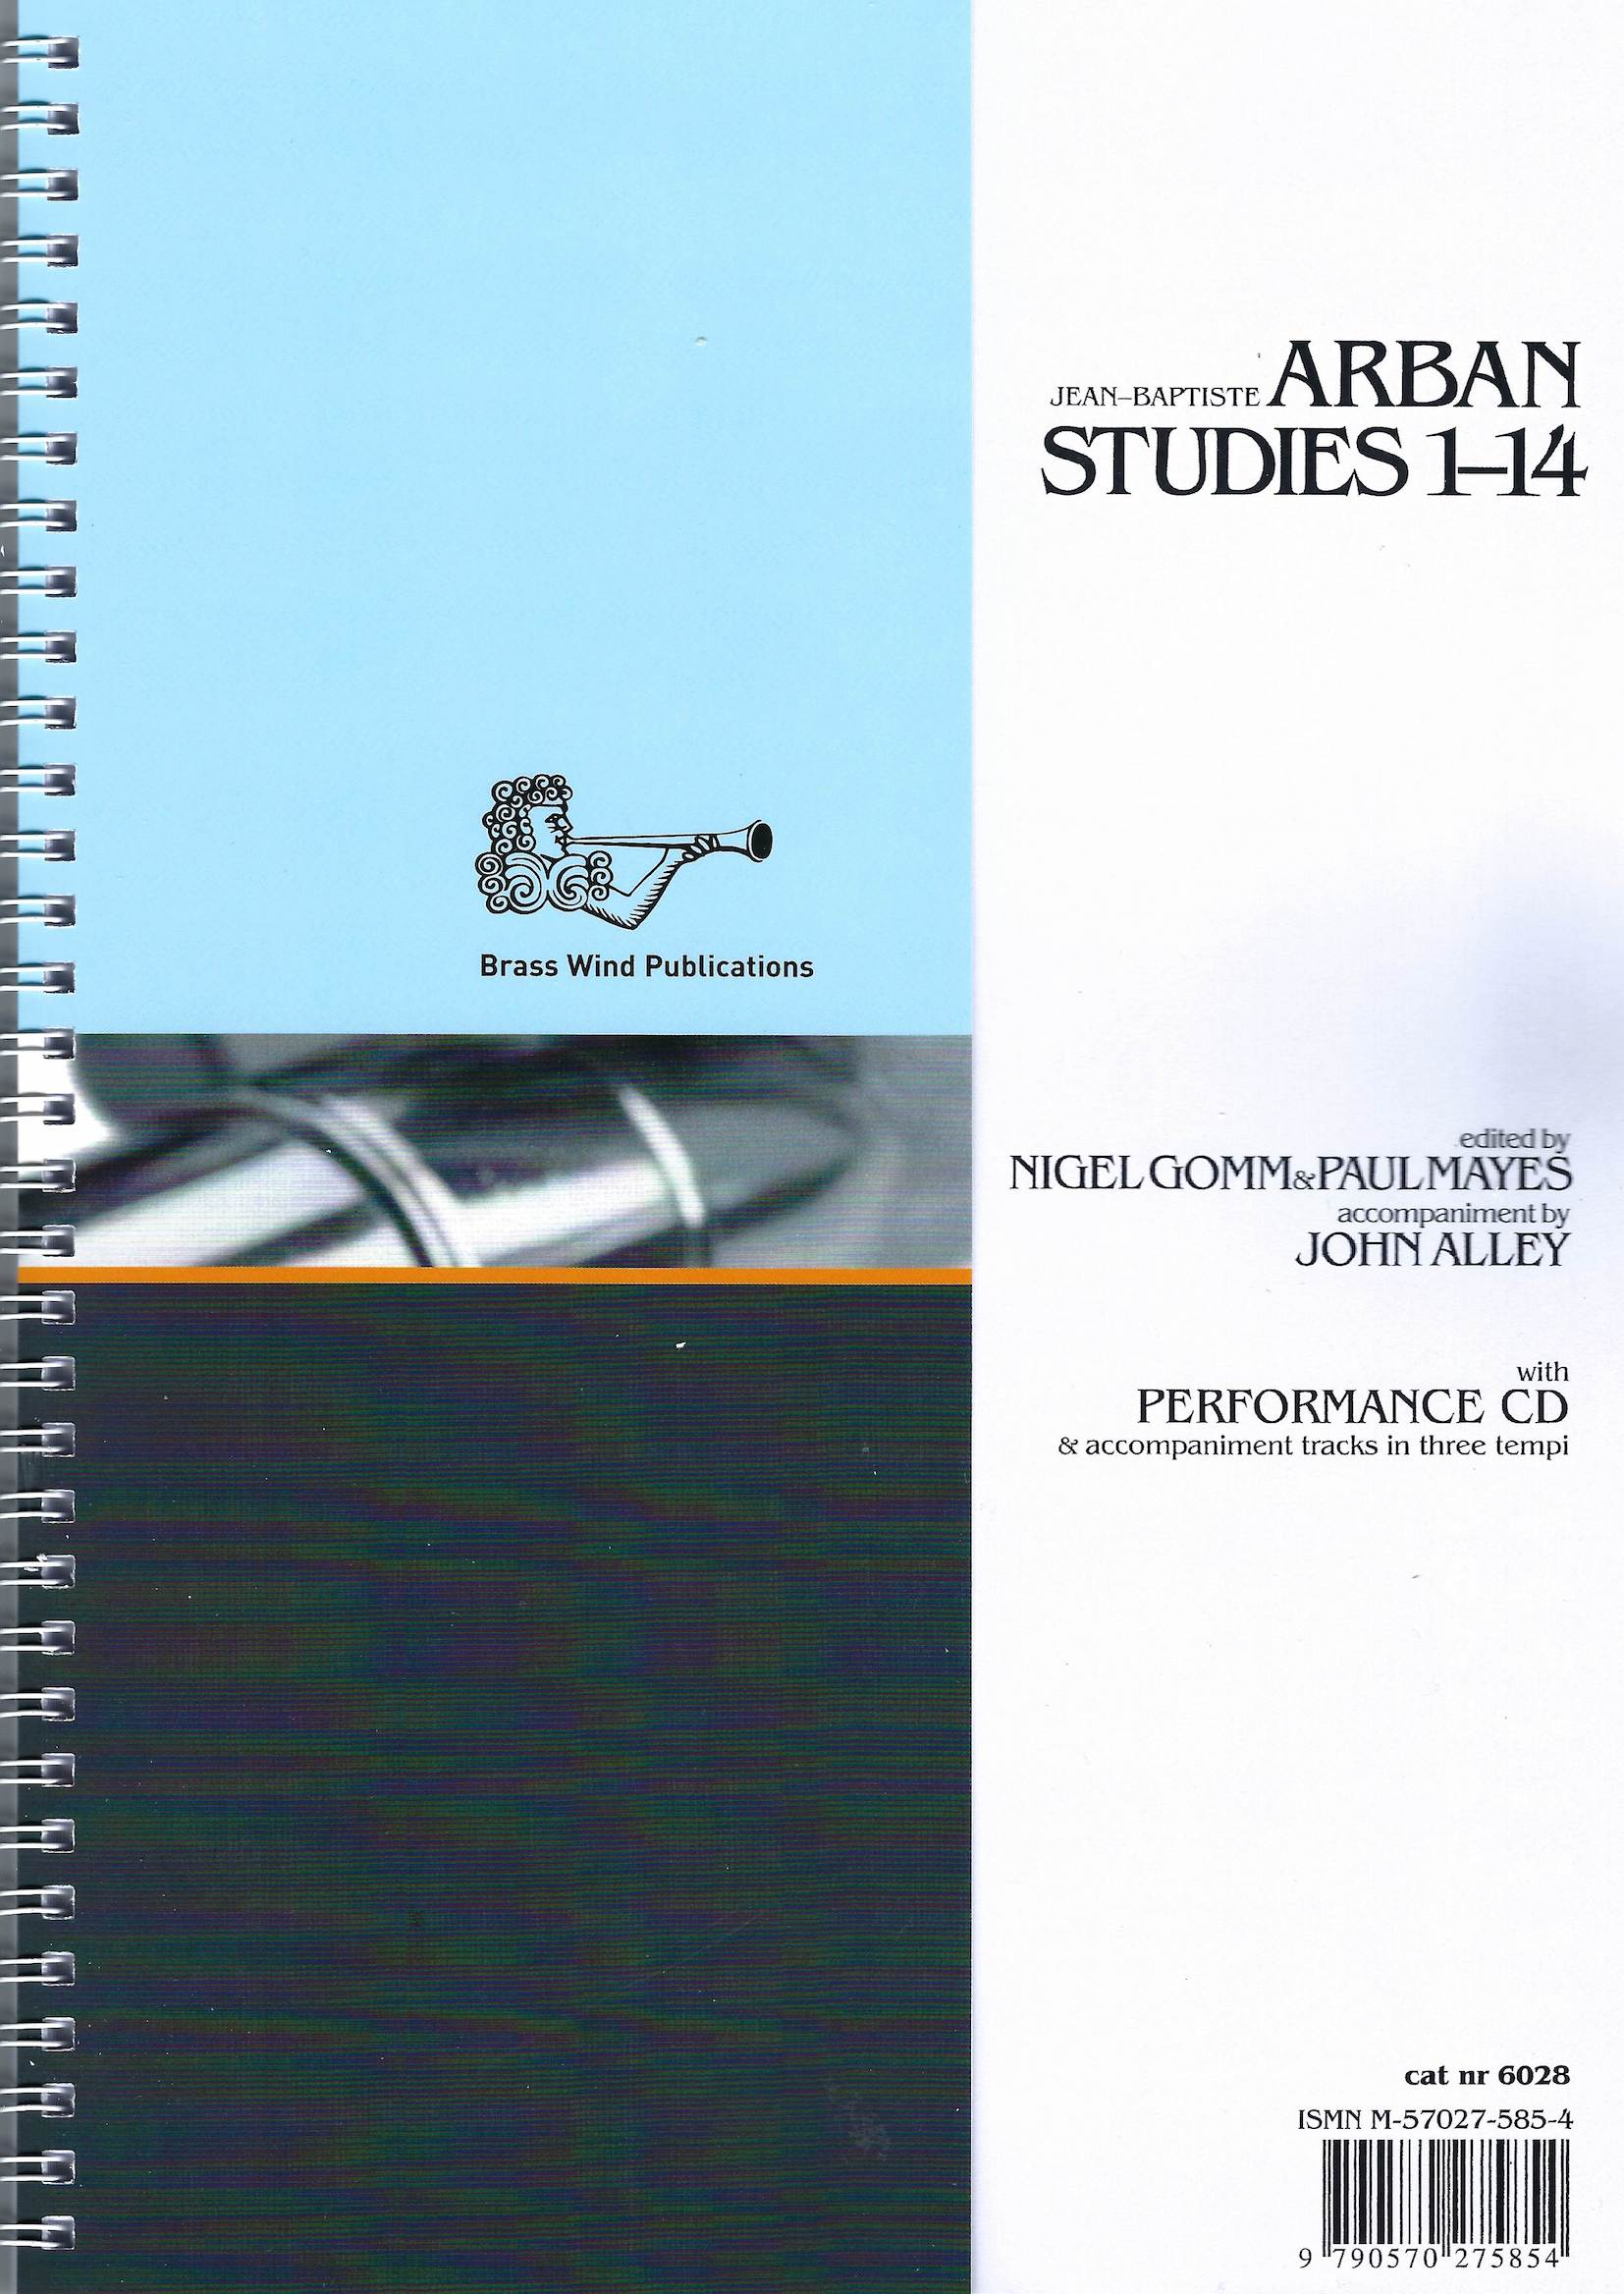 Arban Studies 1-14 - Ed. Gomm and Mayes (solo part, piano part and 2CDs) Treble Clef version